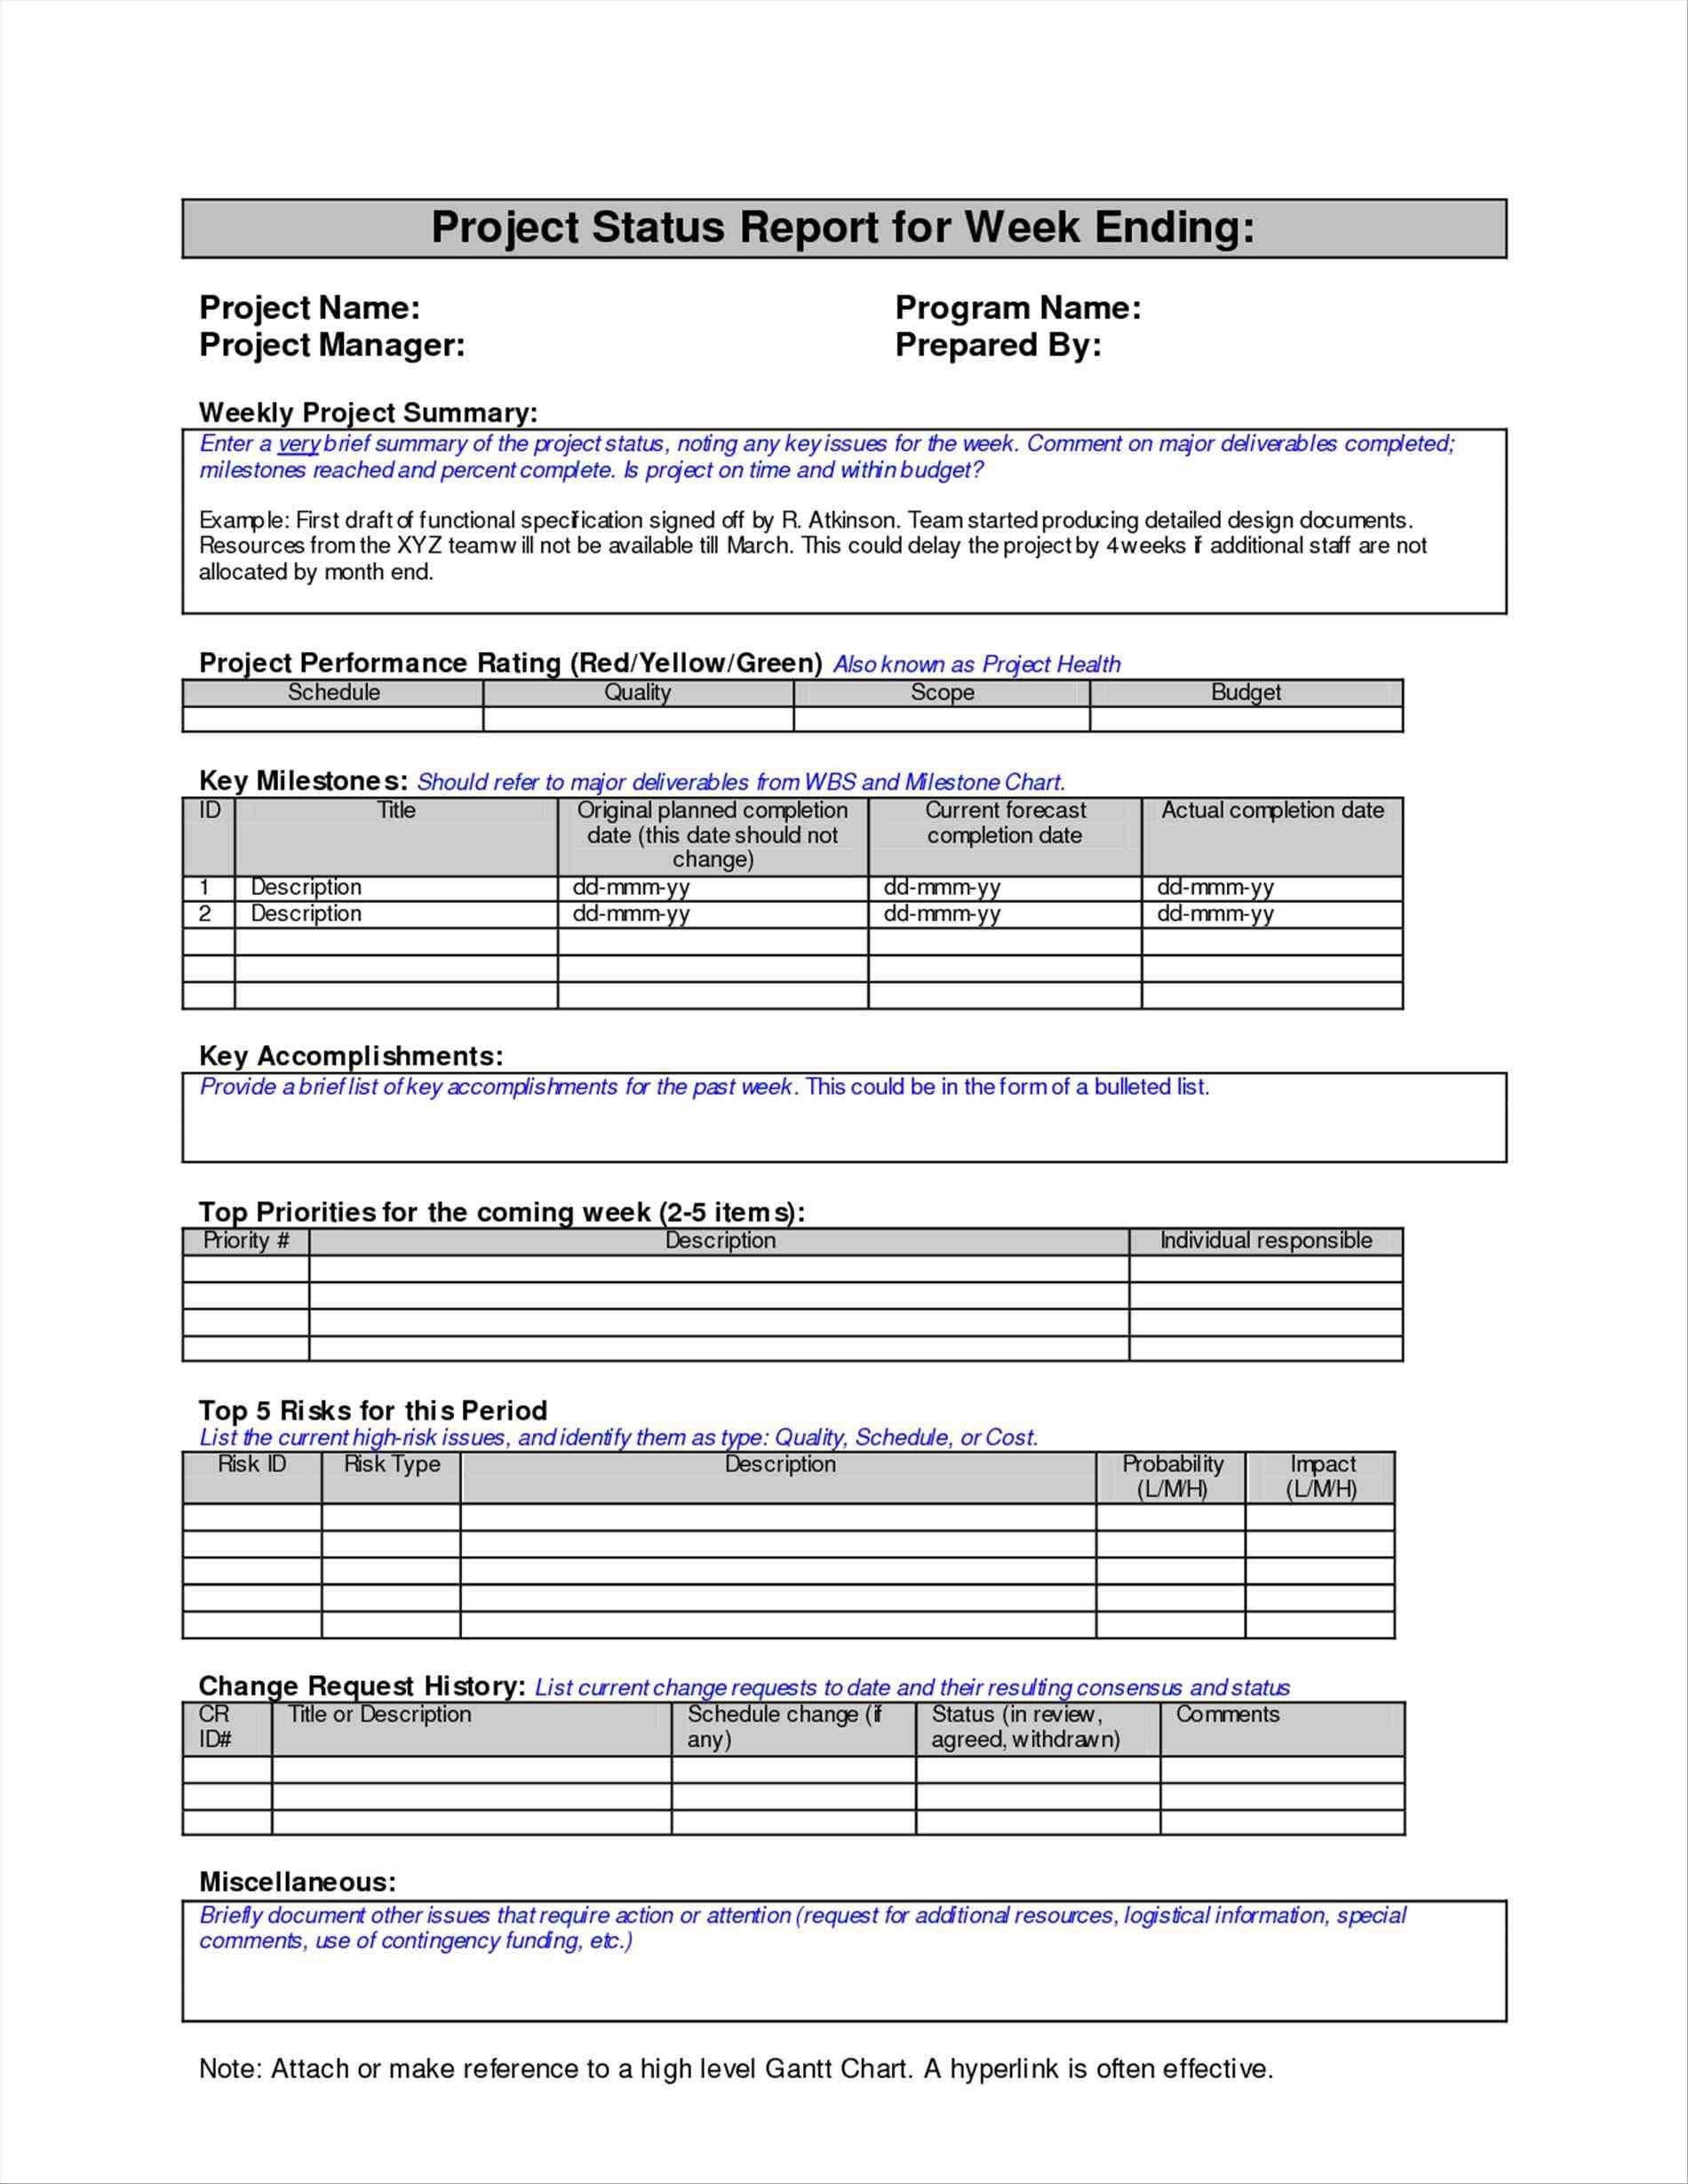 Interior Design Project Timeline  Project Timeline  Project Status In Monthly Program Report Template